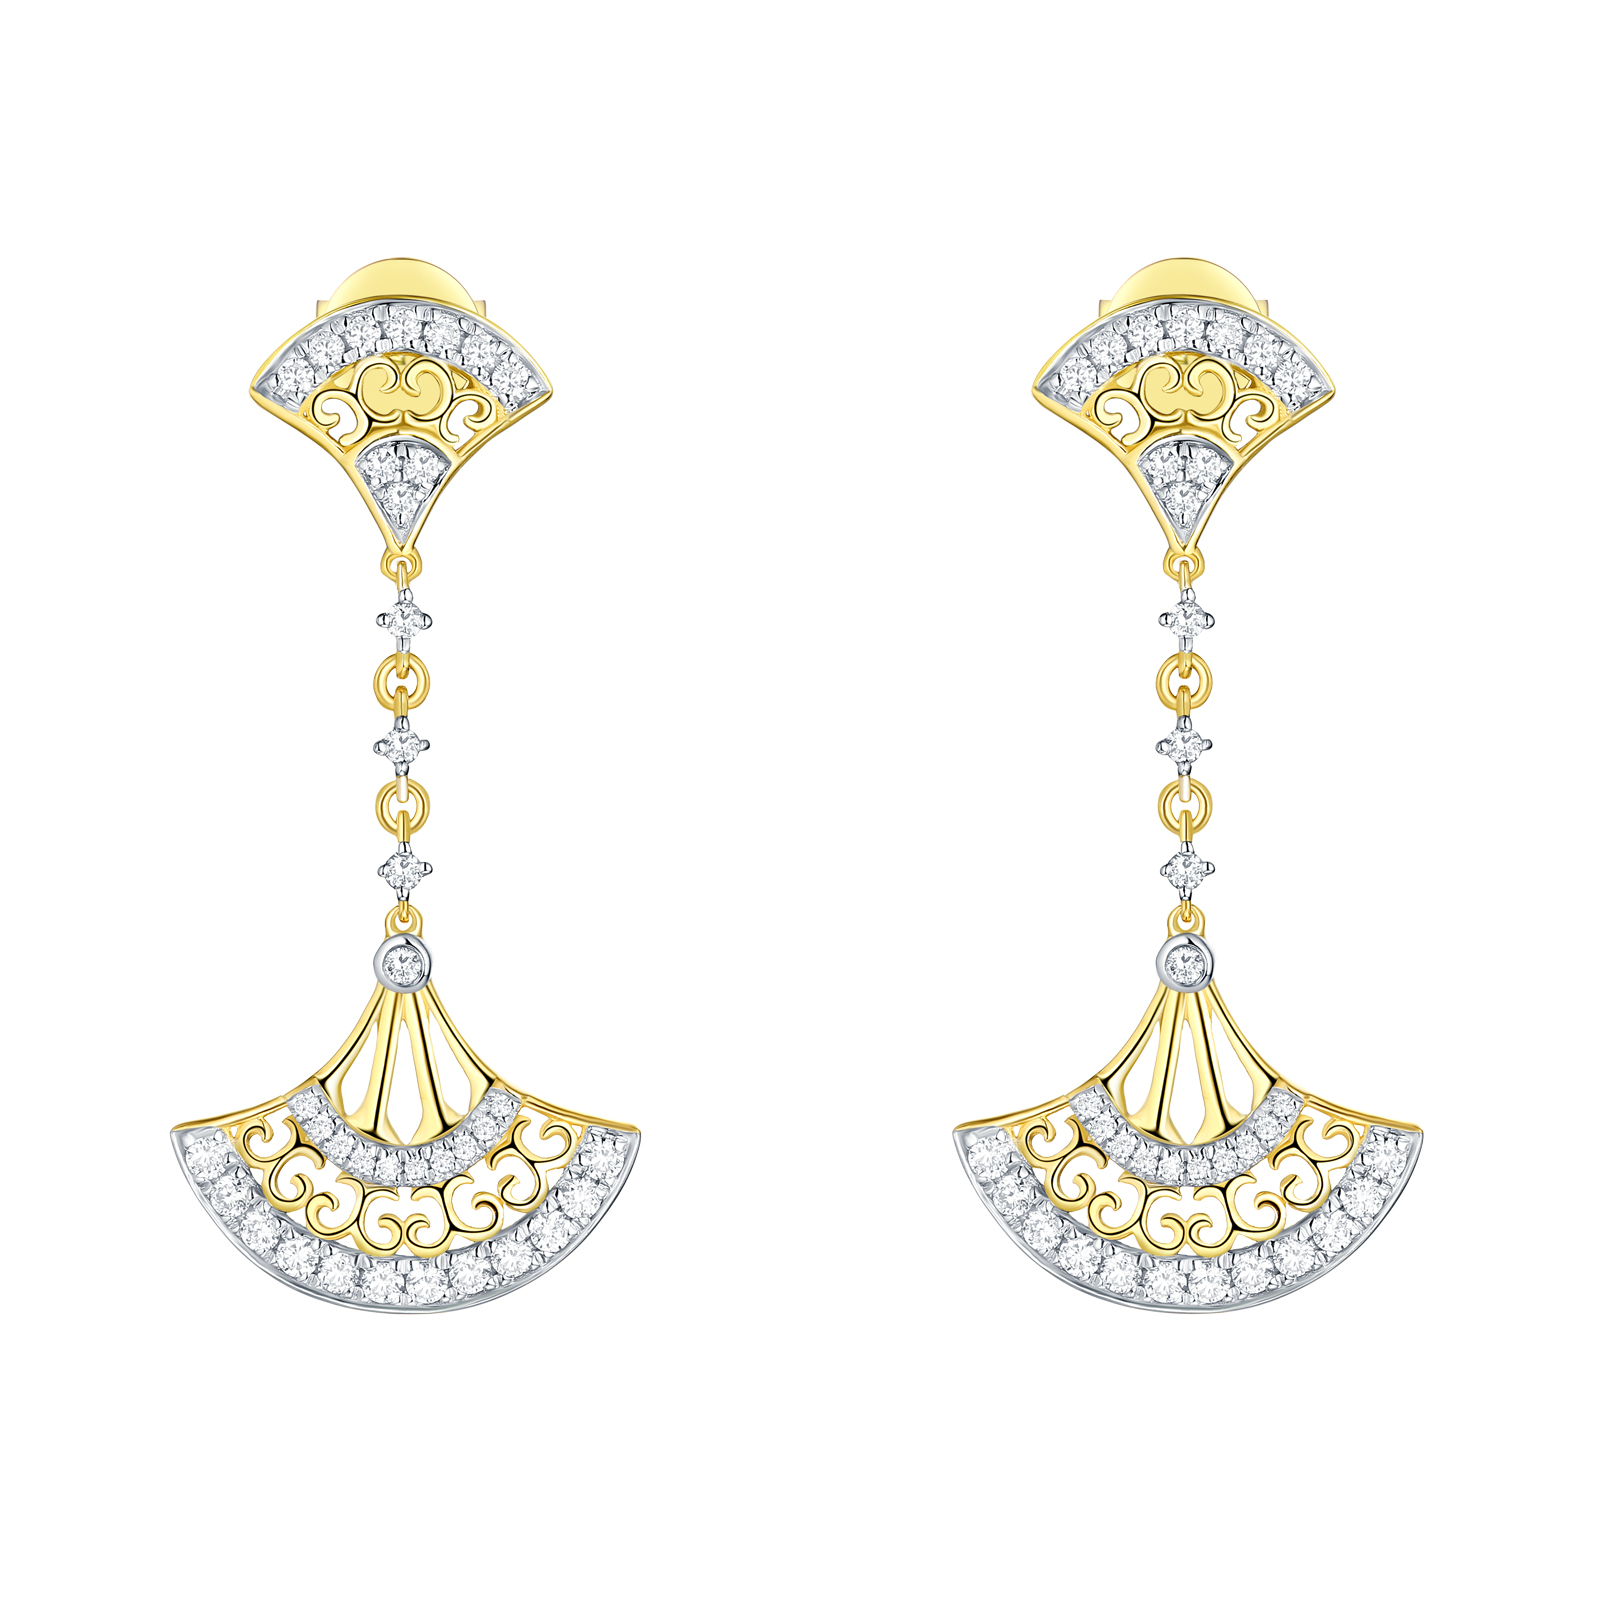 E29918WHT- 14K Yellow Gold Diamond Earrings, 0.54 TCW